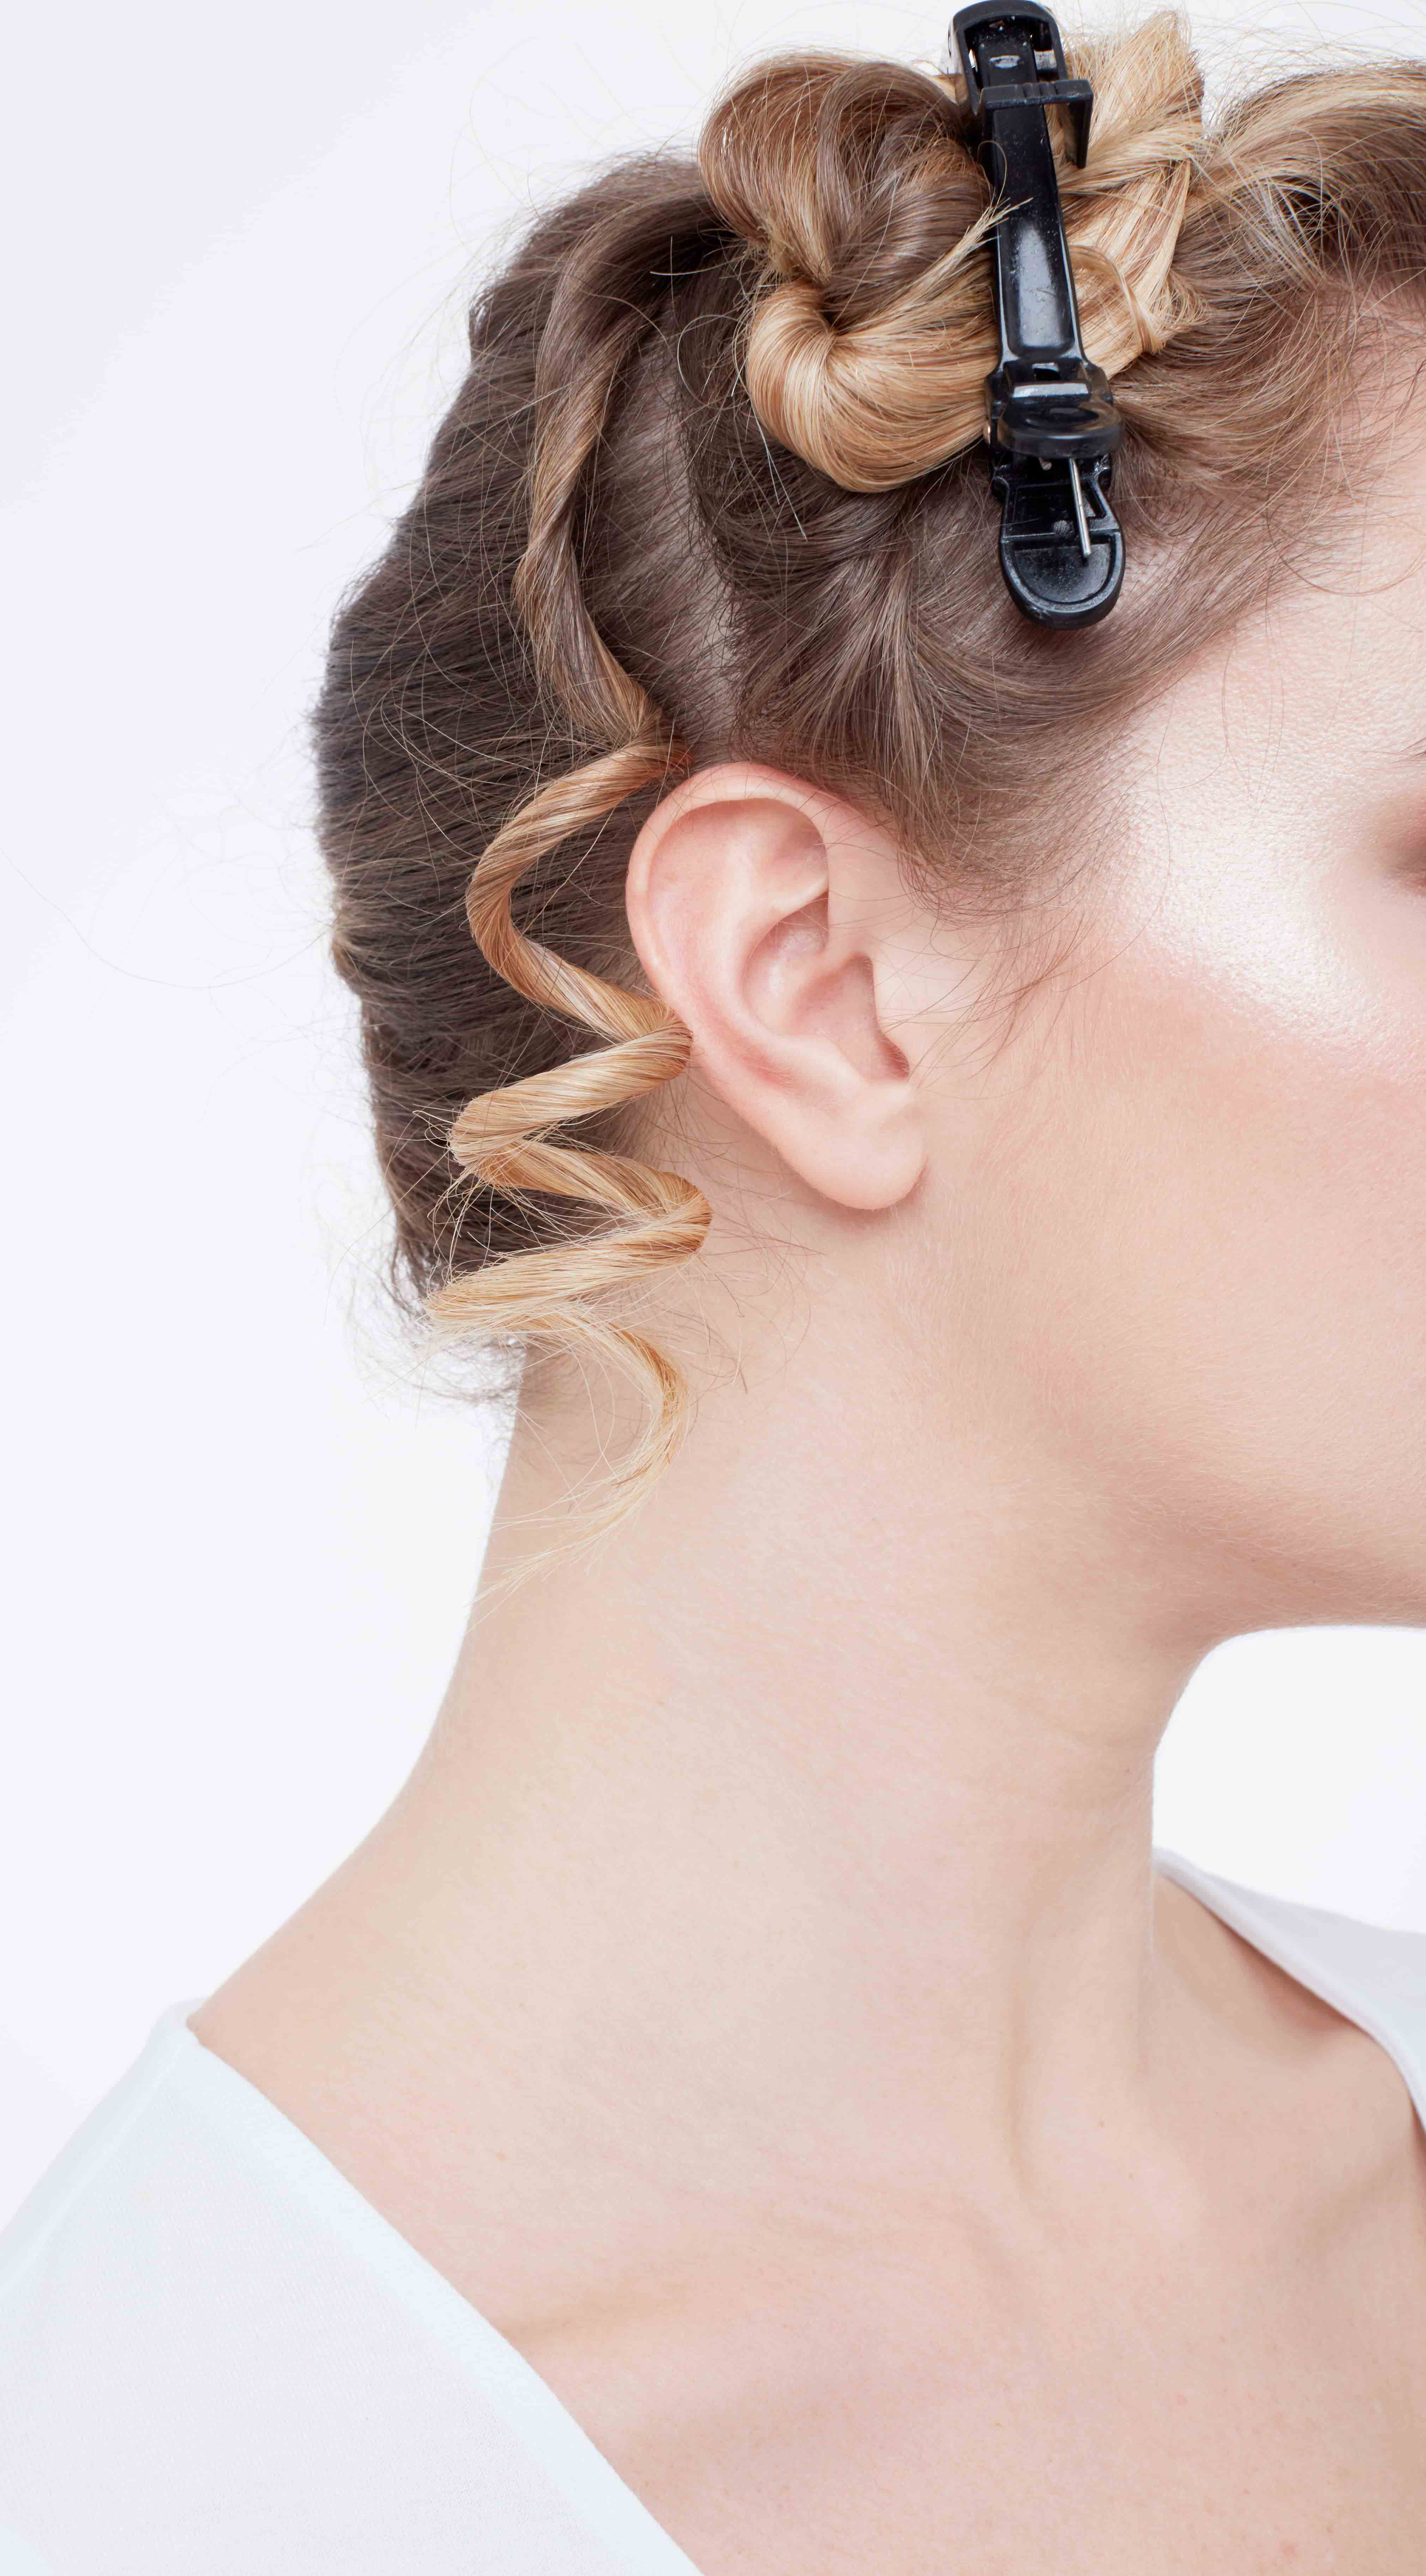 How to curl your hair: Close-up of a blonde woman with her hair twisted and clipped up with a single ringlet curl